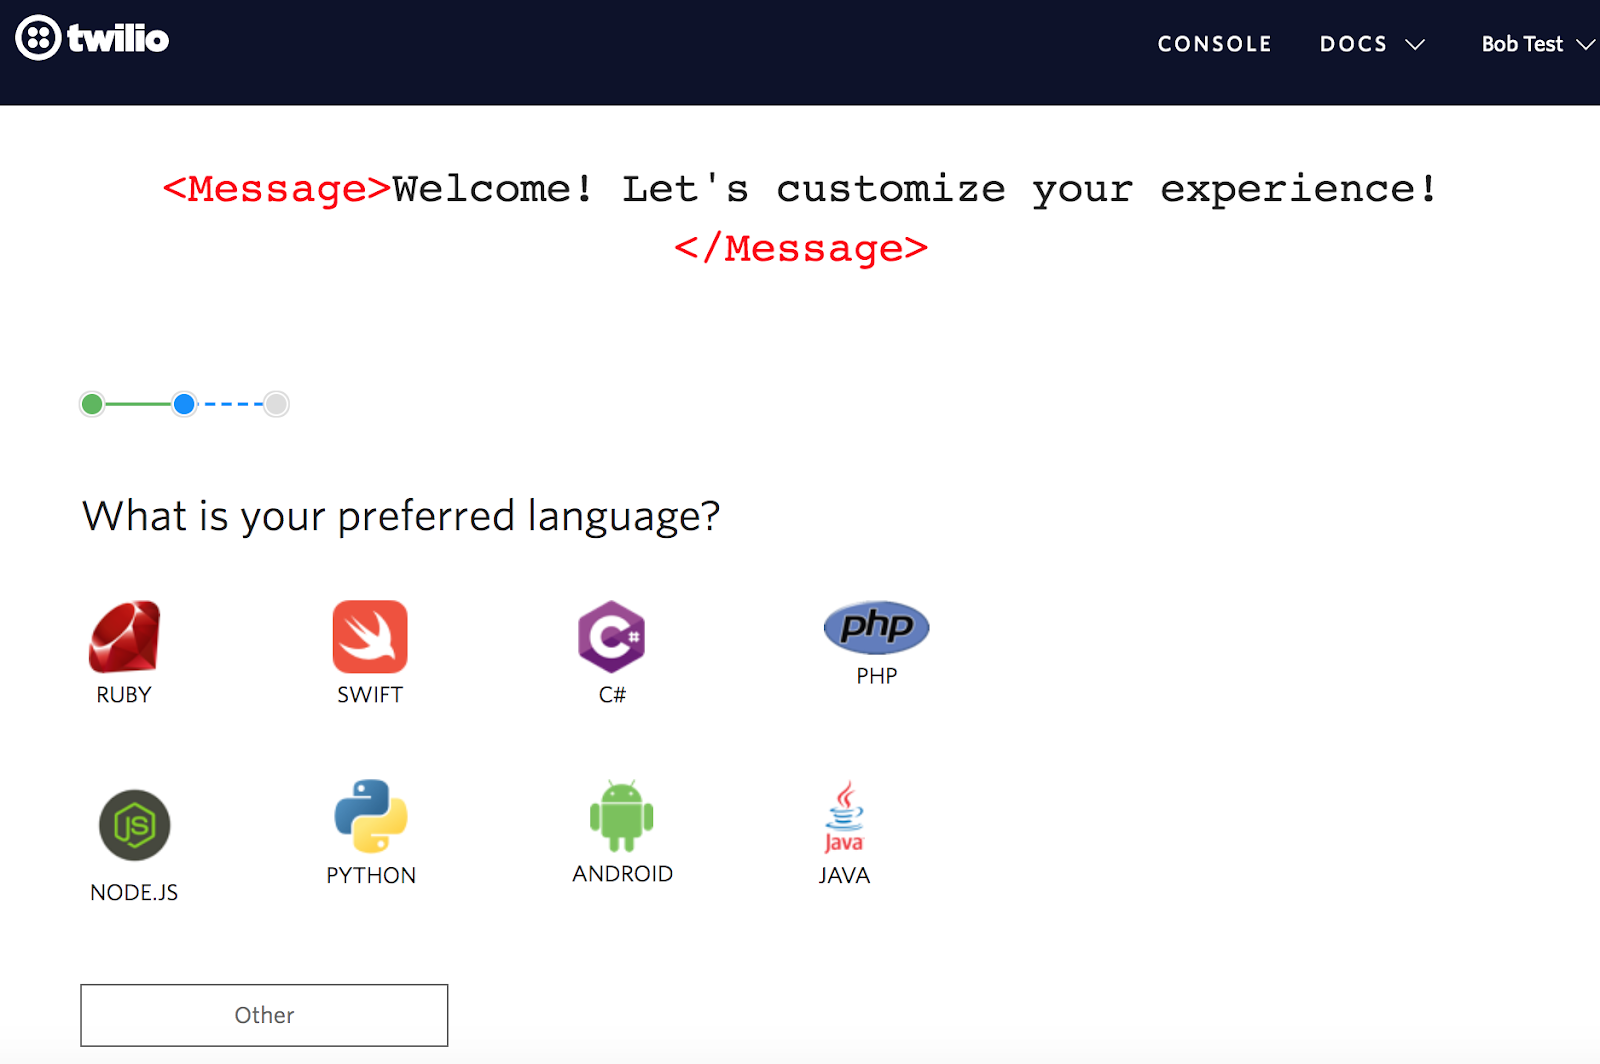 twilio new user onboarding personalization question 2